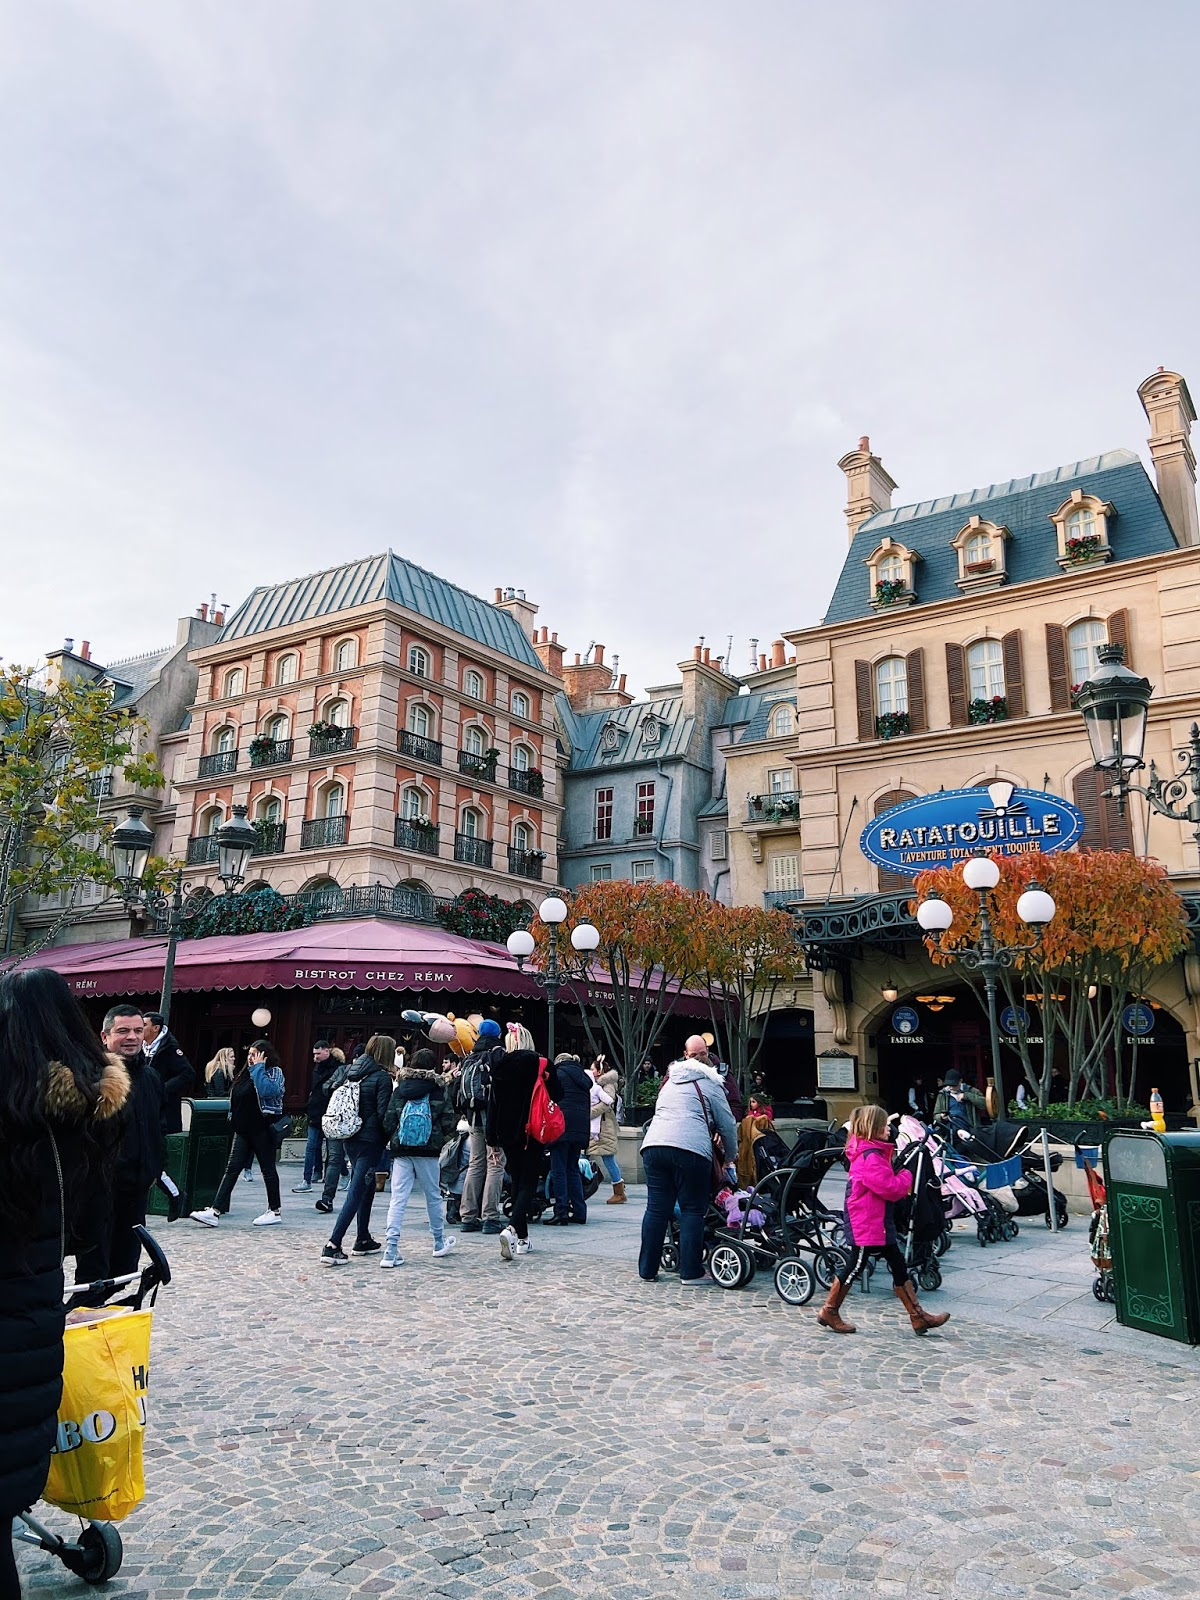 24 hours in Disneyland Paris - see the stars